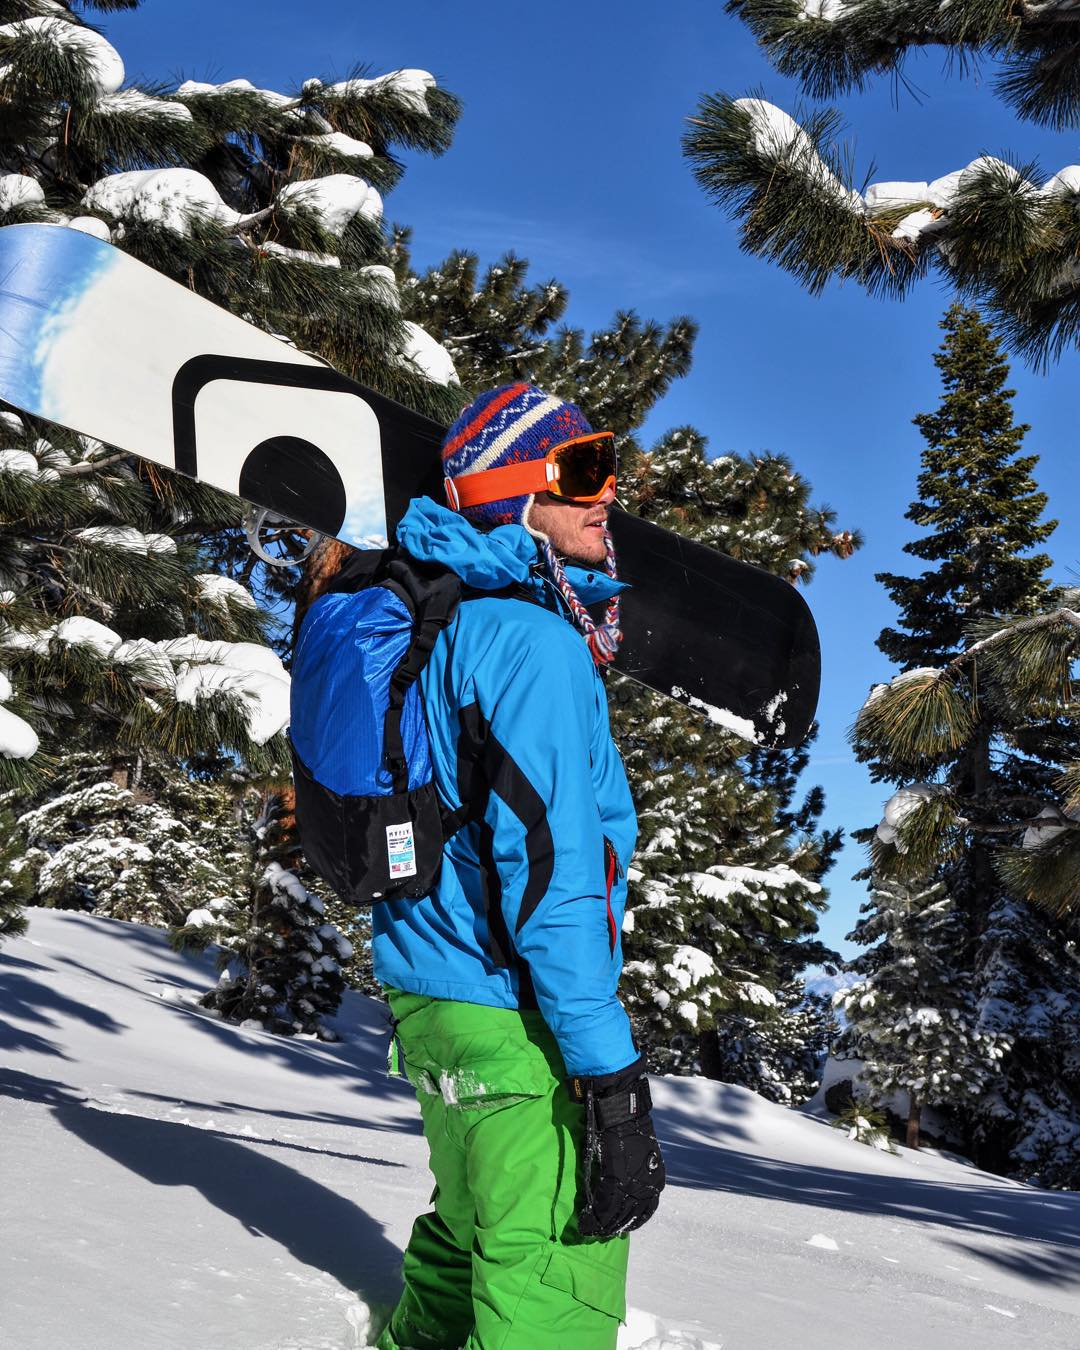 The Tour Pack making fresh tracks at #LakeTahoe. The durable sail material keeps your possessions safe and dry in the snow and each bag is guaranteed for life.  #matchyourjacket #madeforlife #california #snowboarding #wintertime